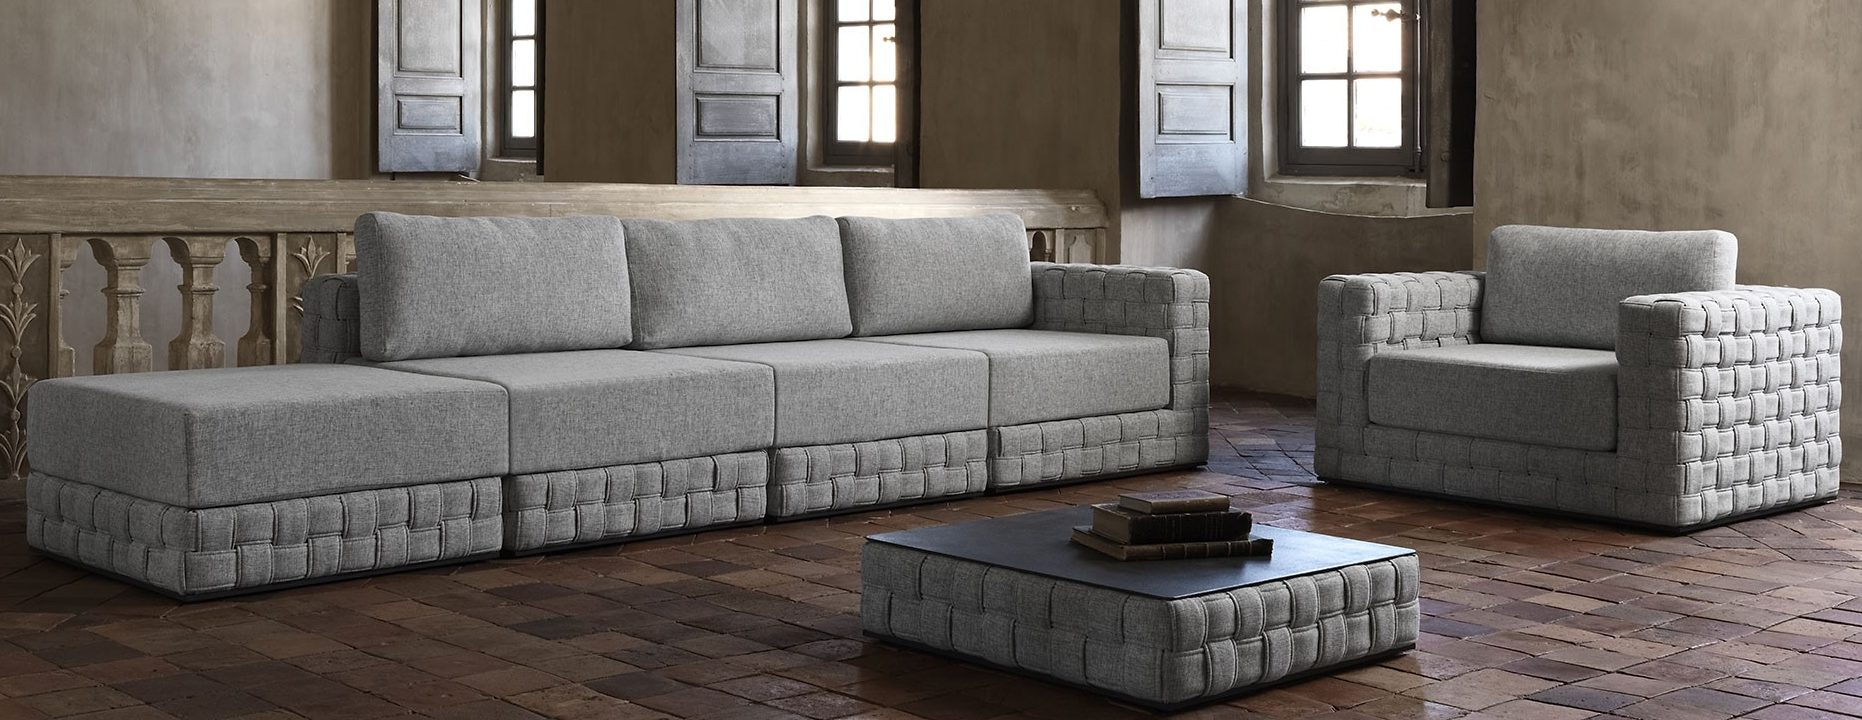 Baron Sectional Modular Sofa Couture Outdoor